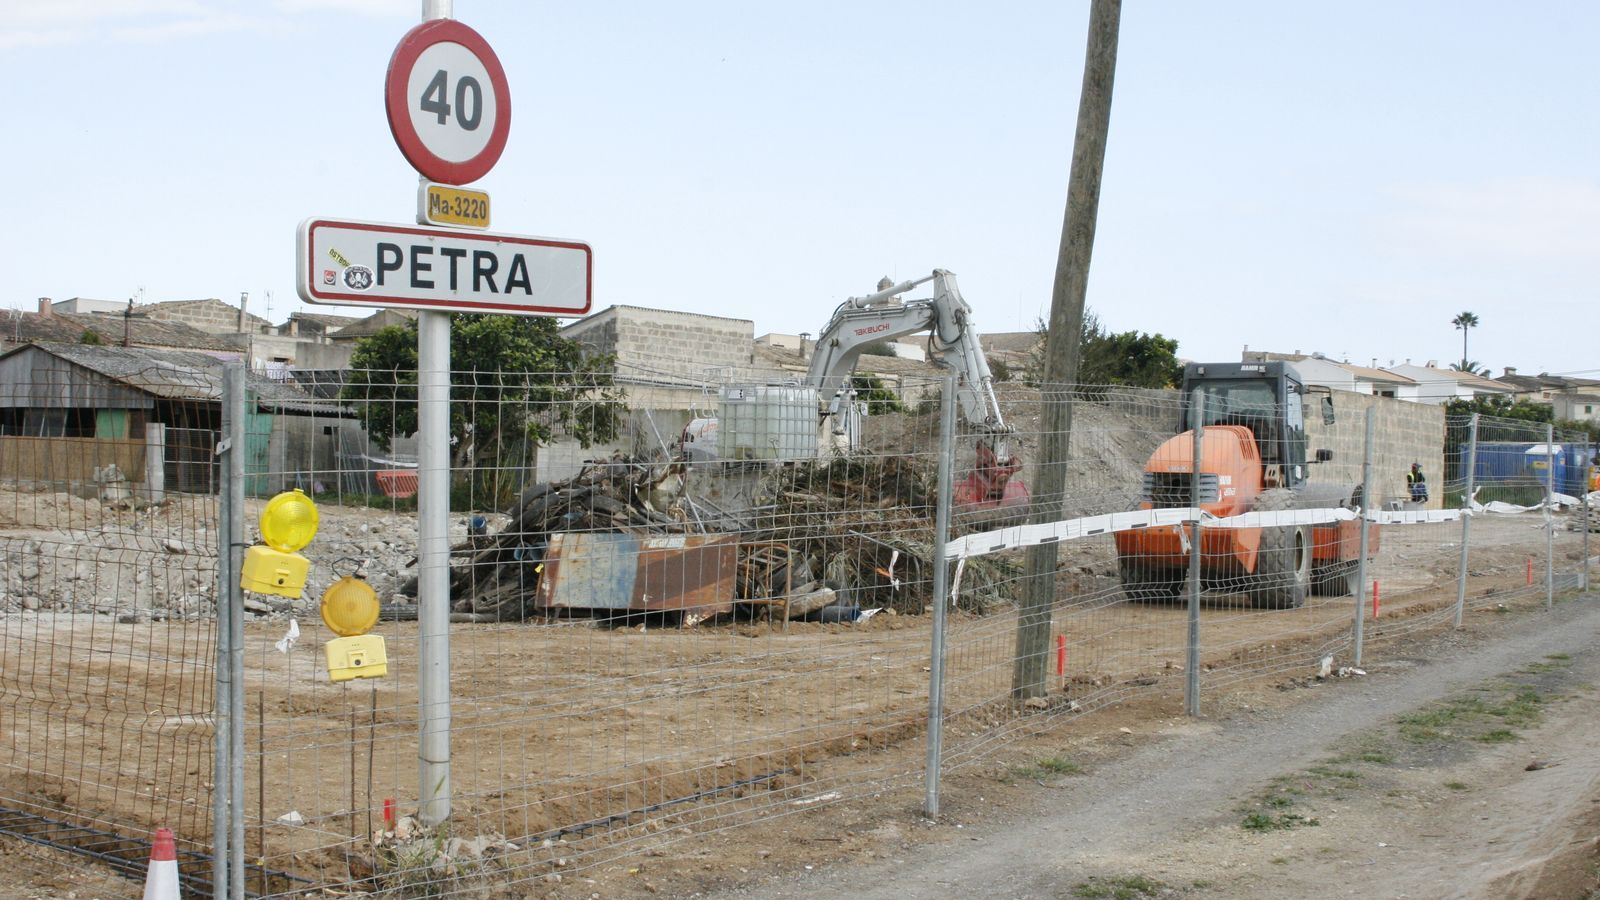 Zona de l'entrada a Petra on es construeix un àrea d'estacionament per a 80 vehicles.